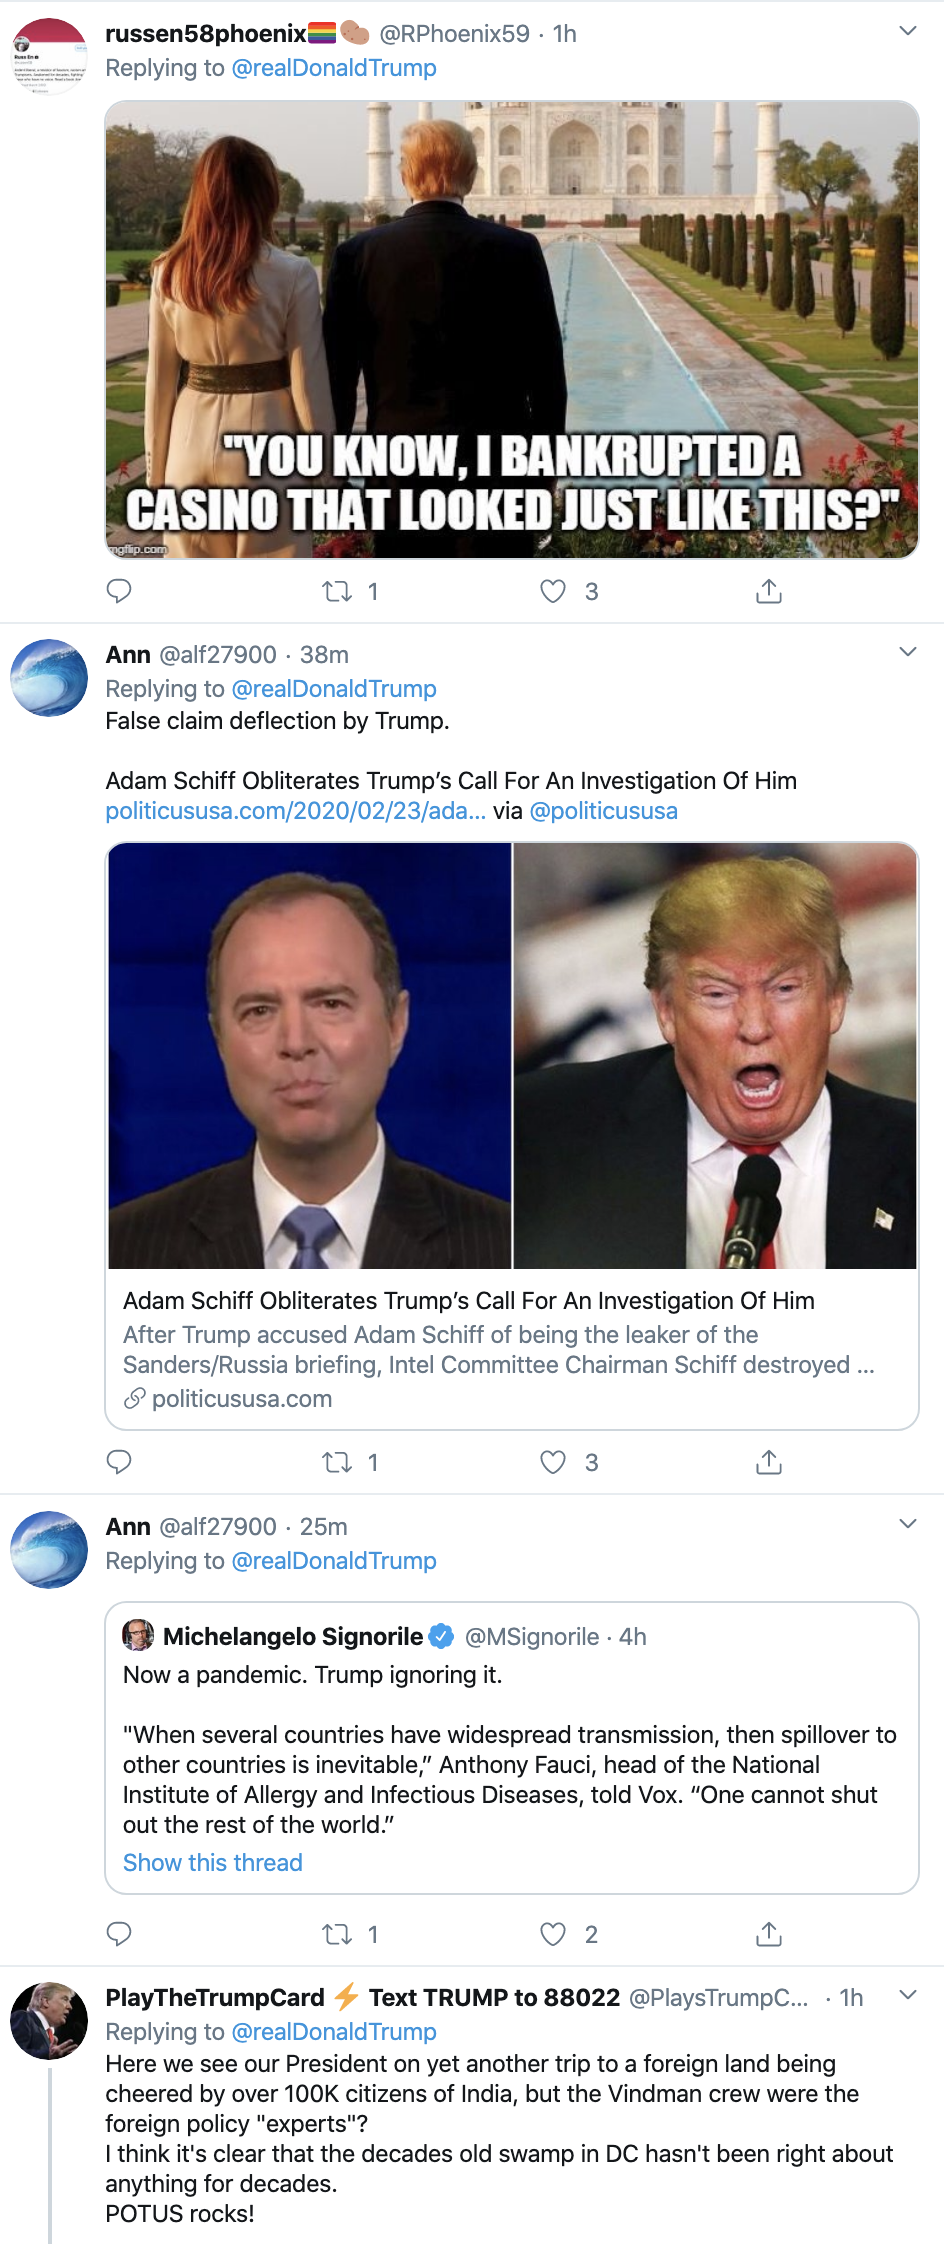 Screen-Shot-2020-02-24-at-2.25.30-PM Trump Tweets India Video Montage - Gets Mocked Instantly Corruption Donald Trump Featured Politics Top Stories